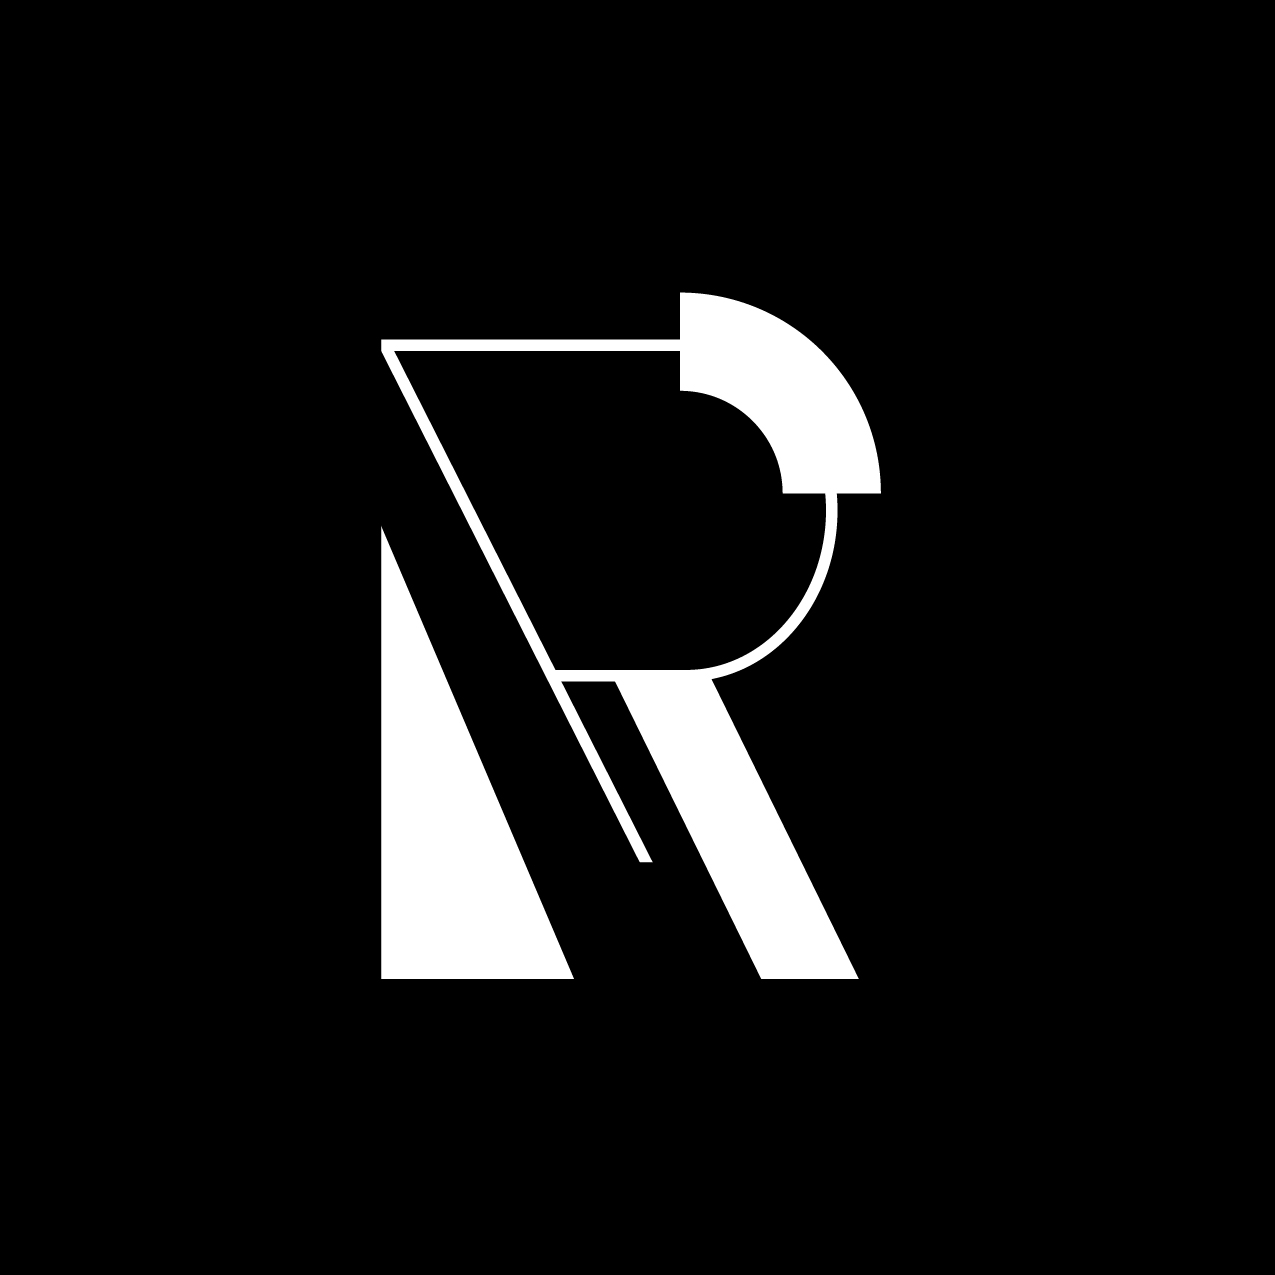 Letter R2 Design by Furia